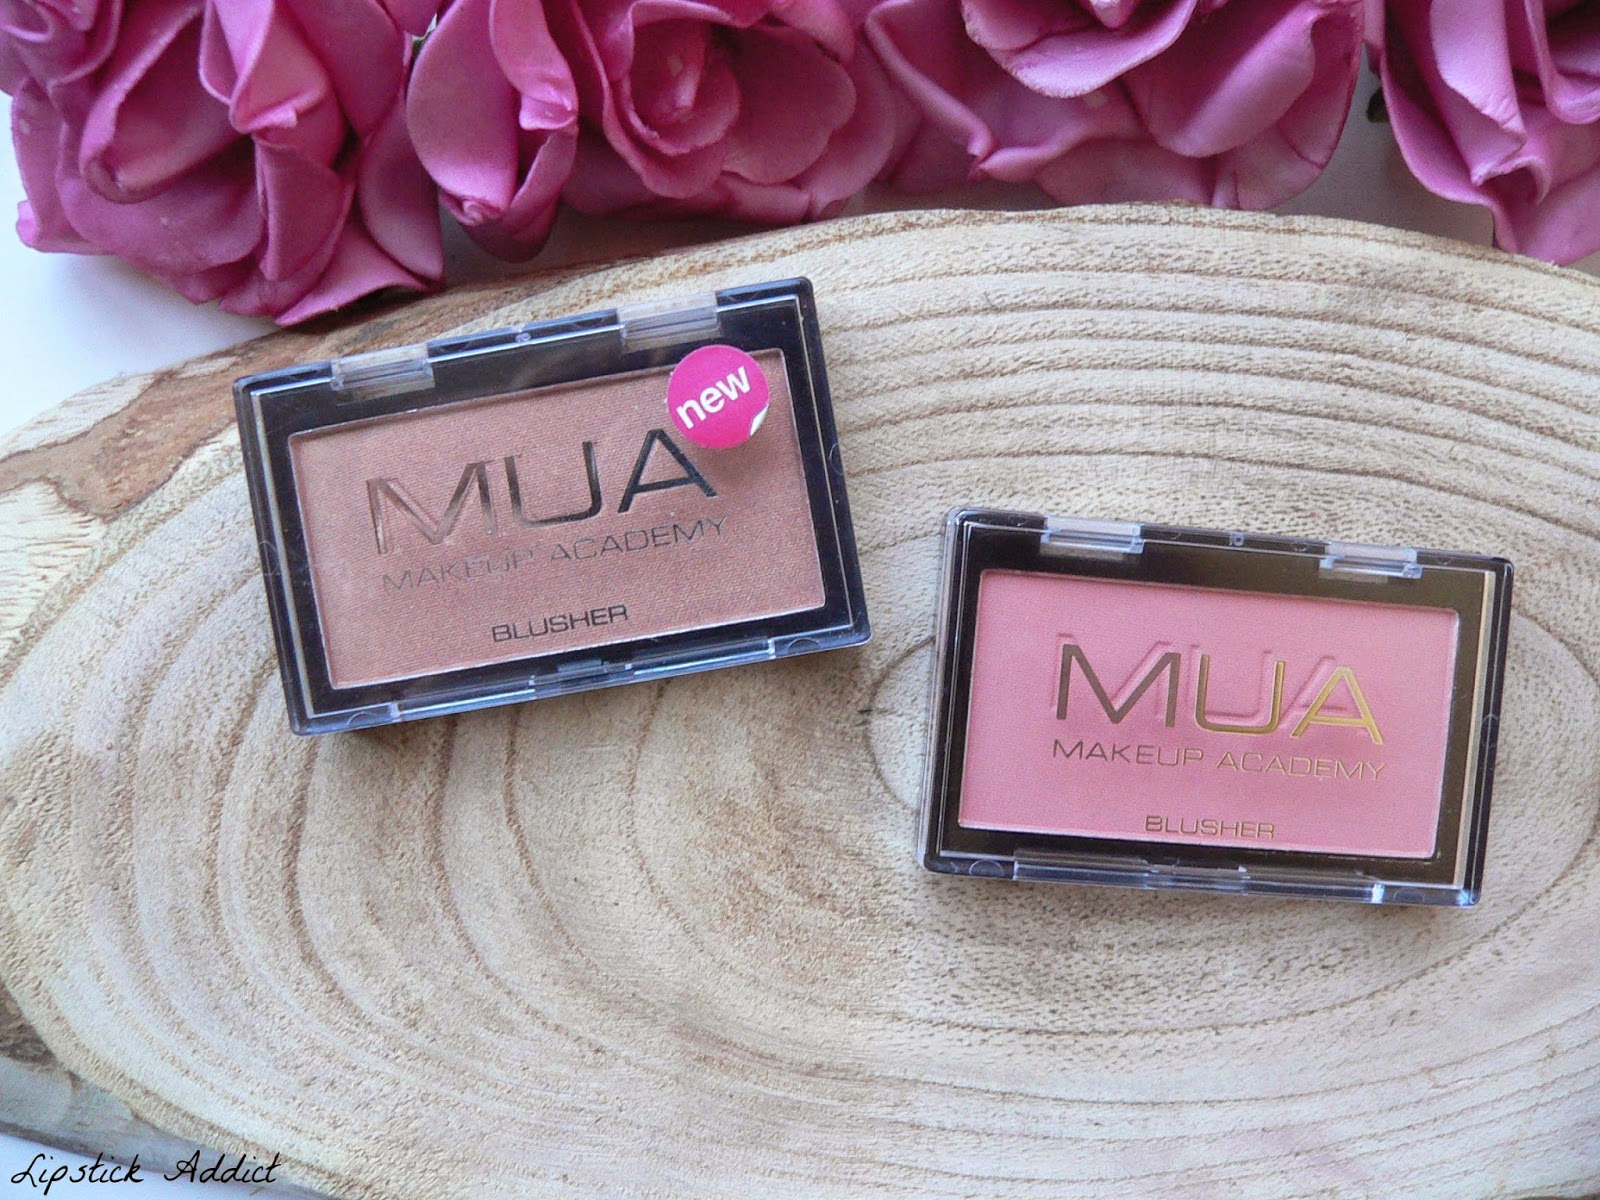 Make up academy Mua blush review shade 2 shade 6 swatches swatch